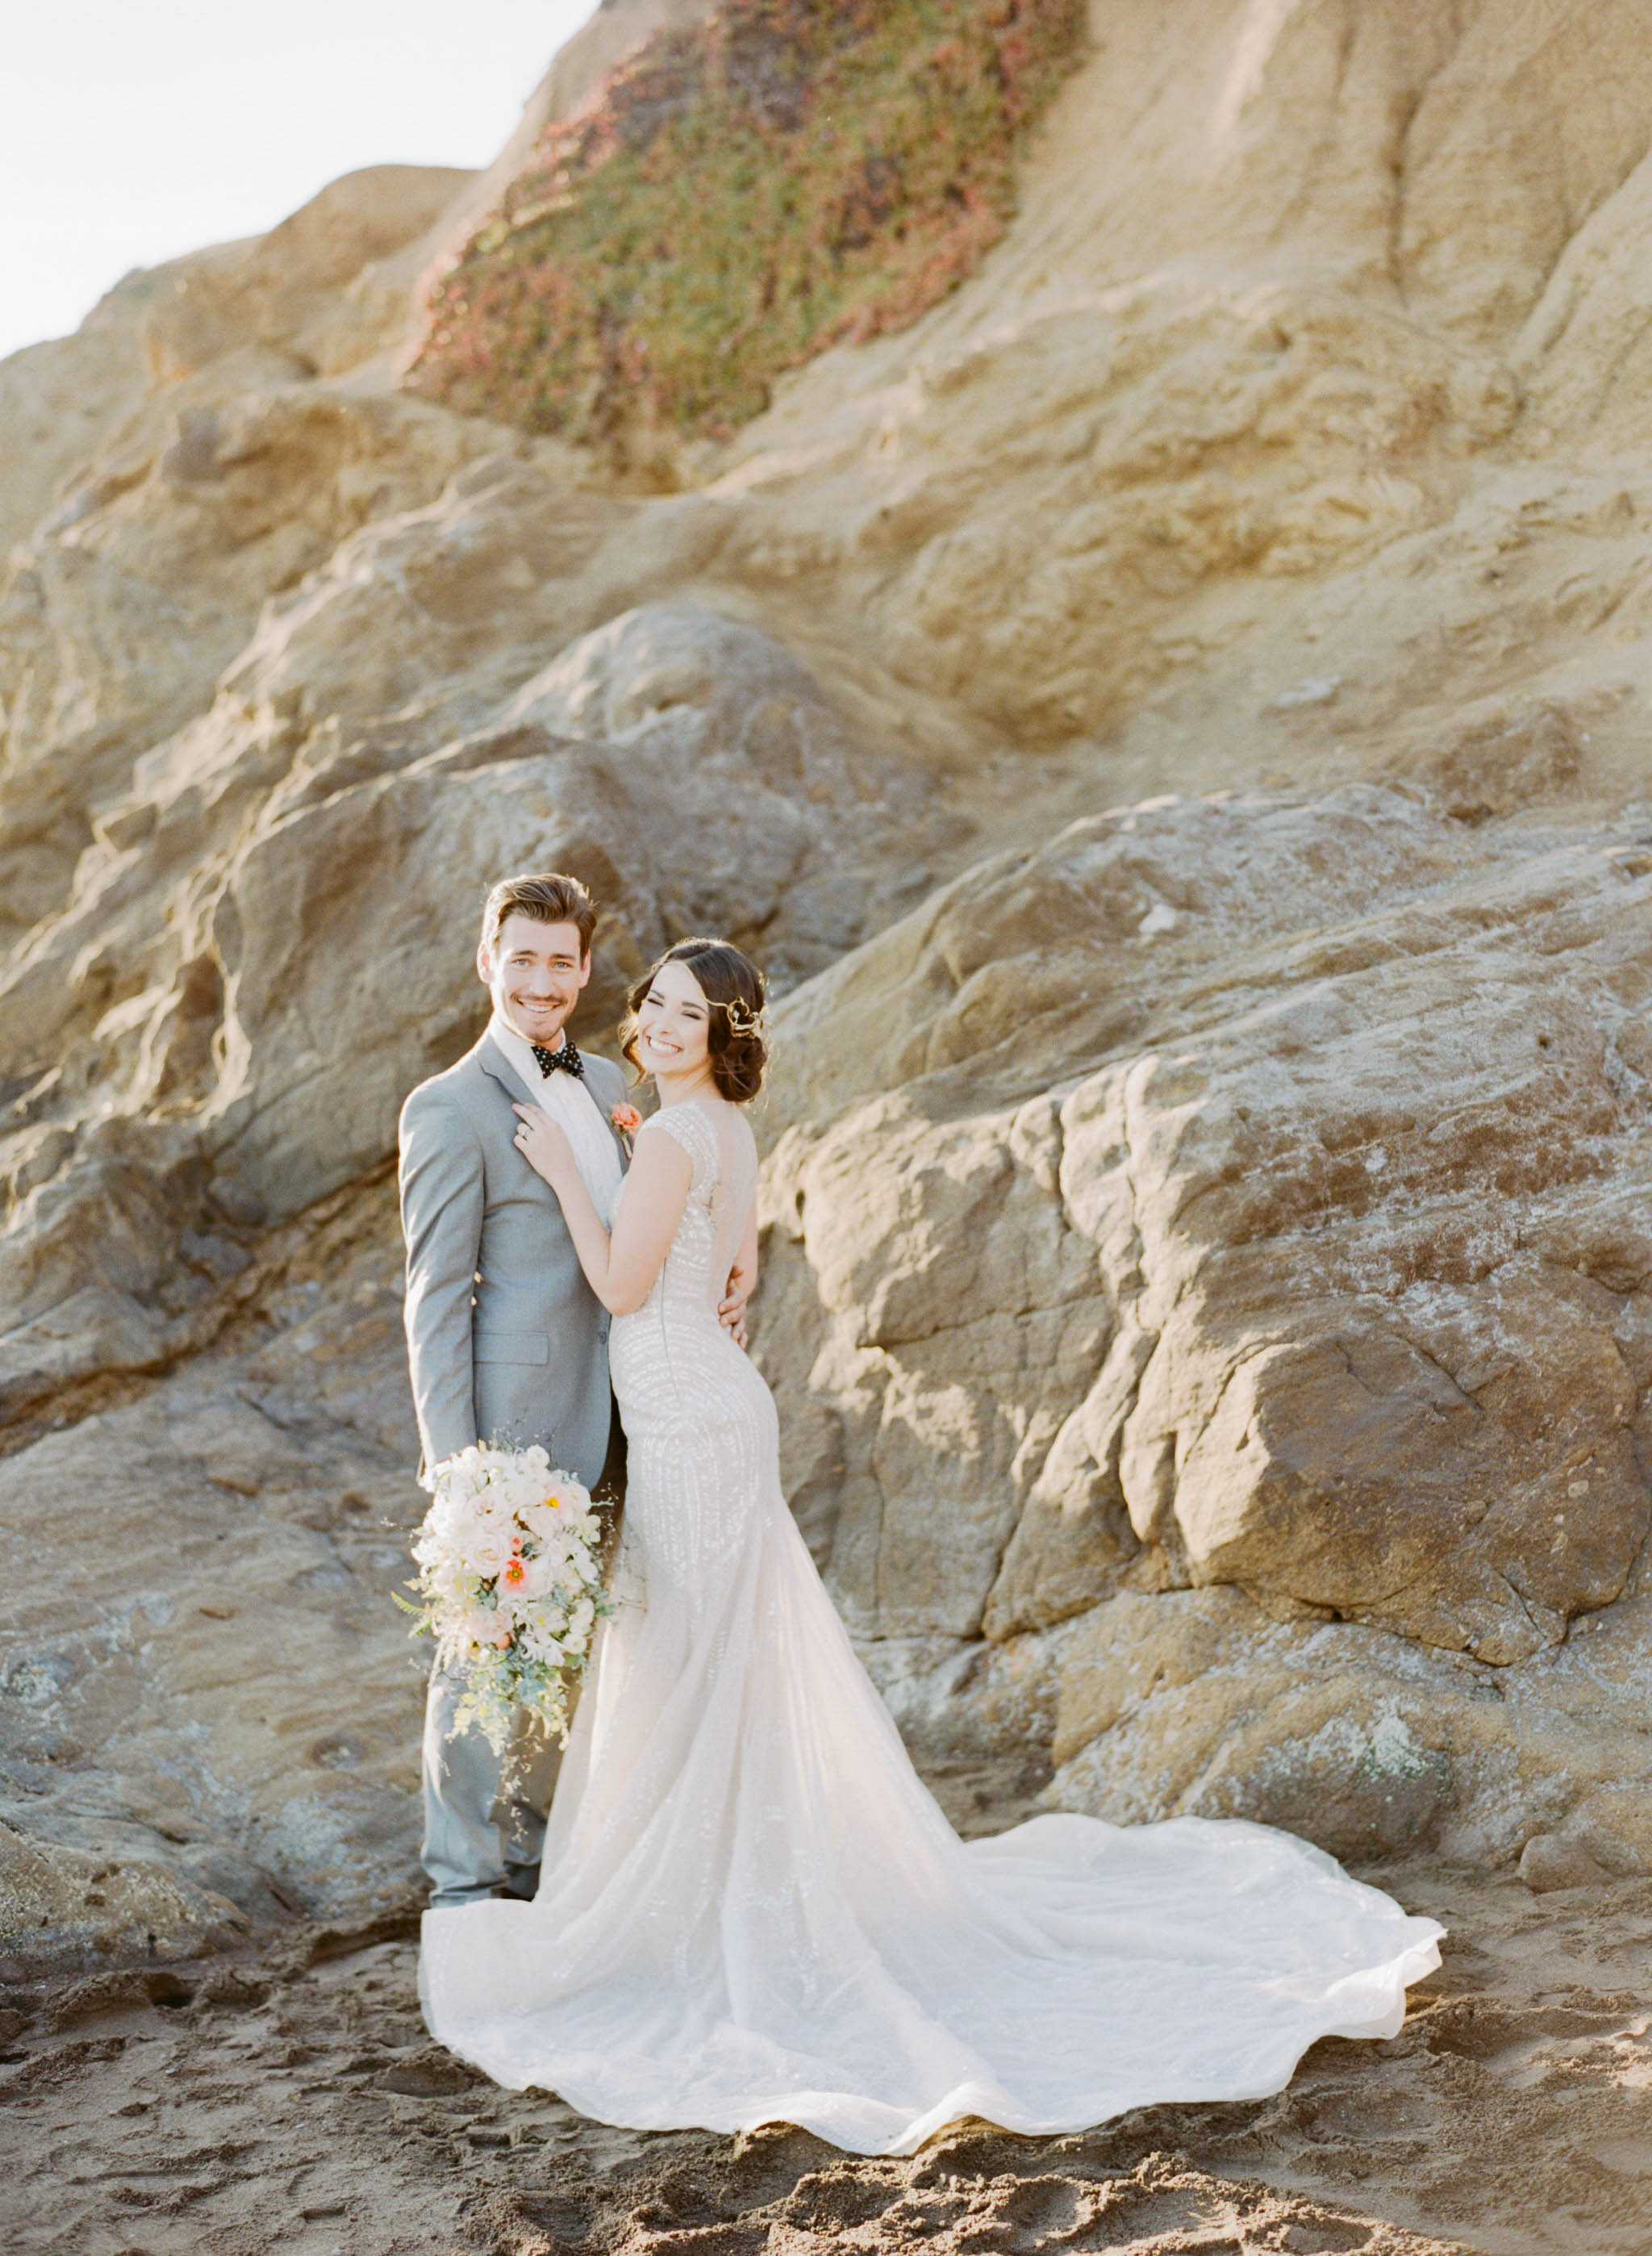 A bride and groom pose by the cliffs on a California beach after their romantic ocean wedding; Sylvie Gil Photography